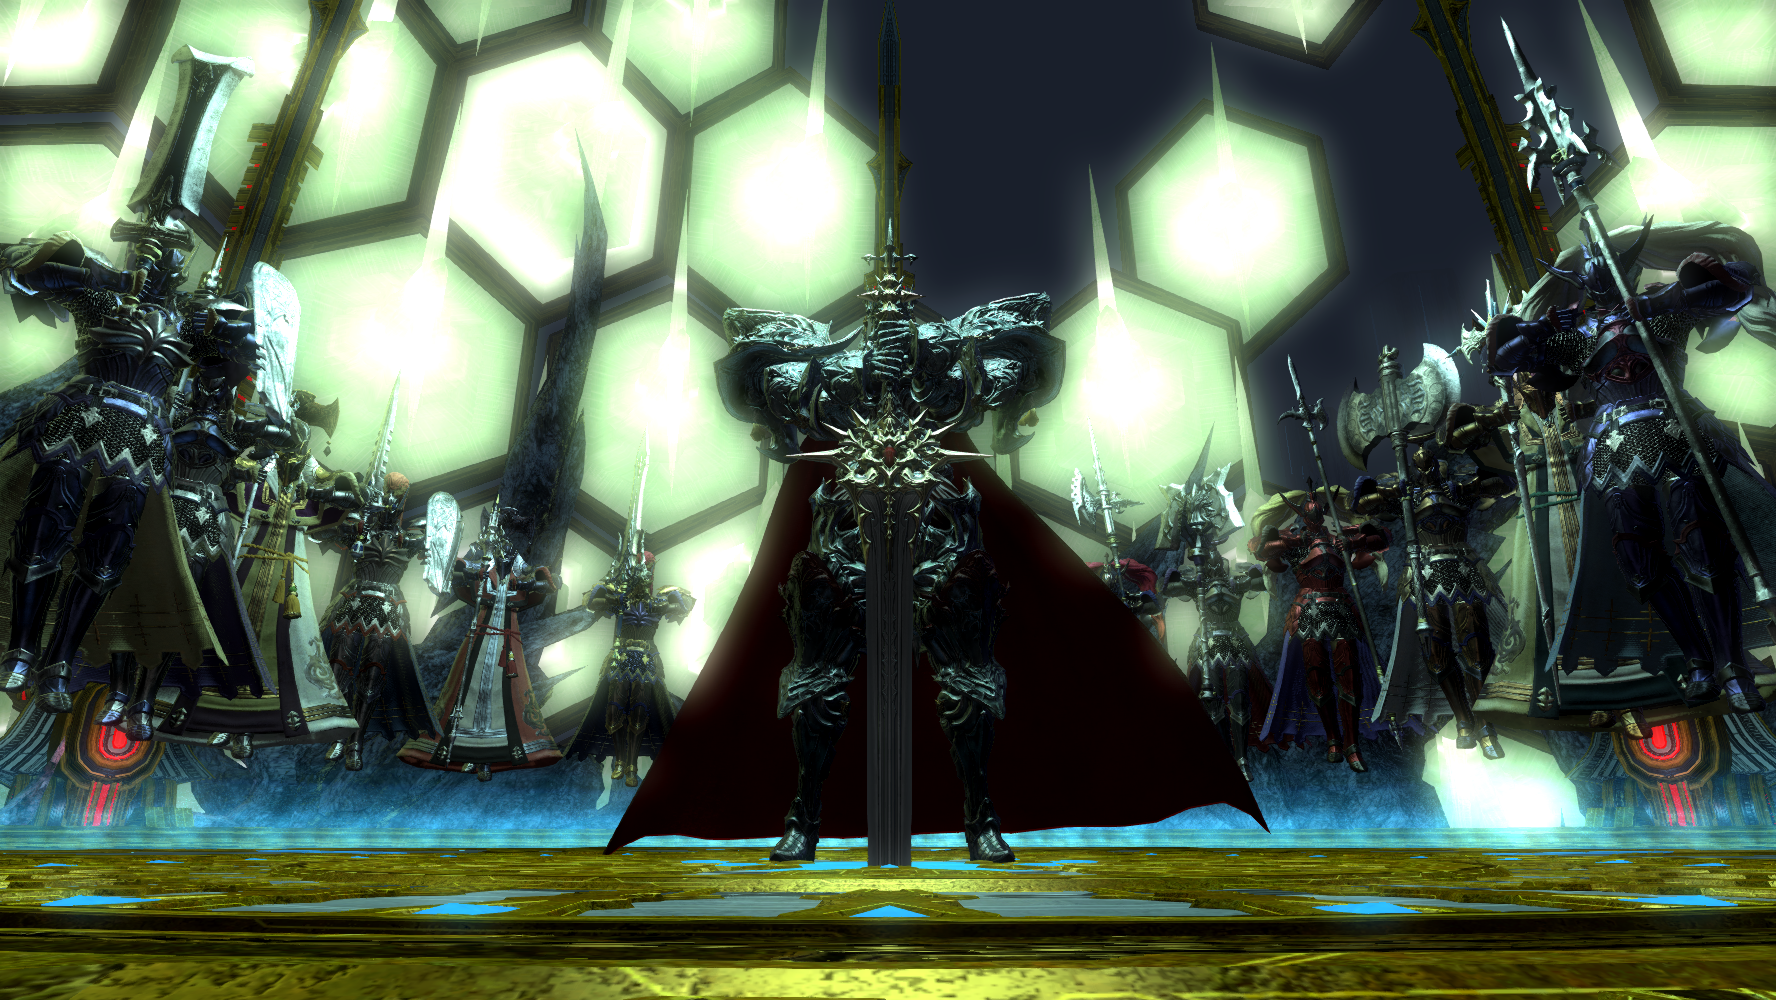 Knights of the Round (Final Fantasy XIV)